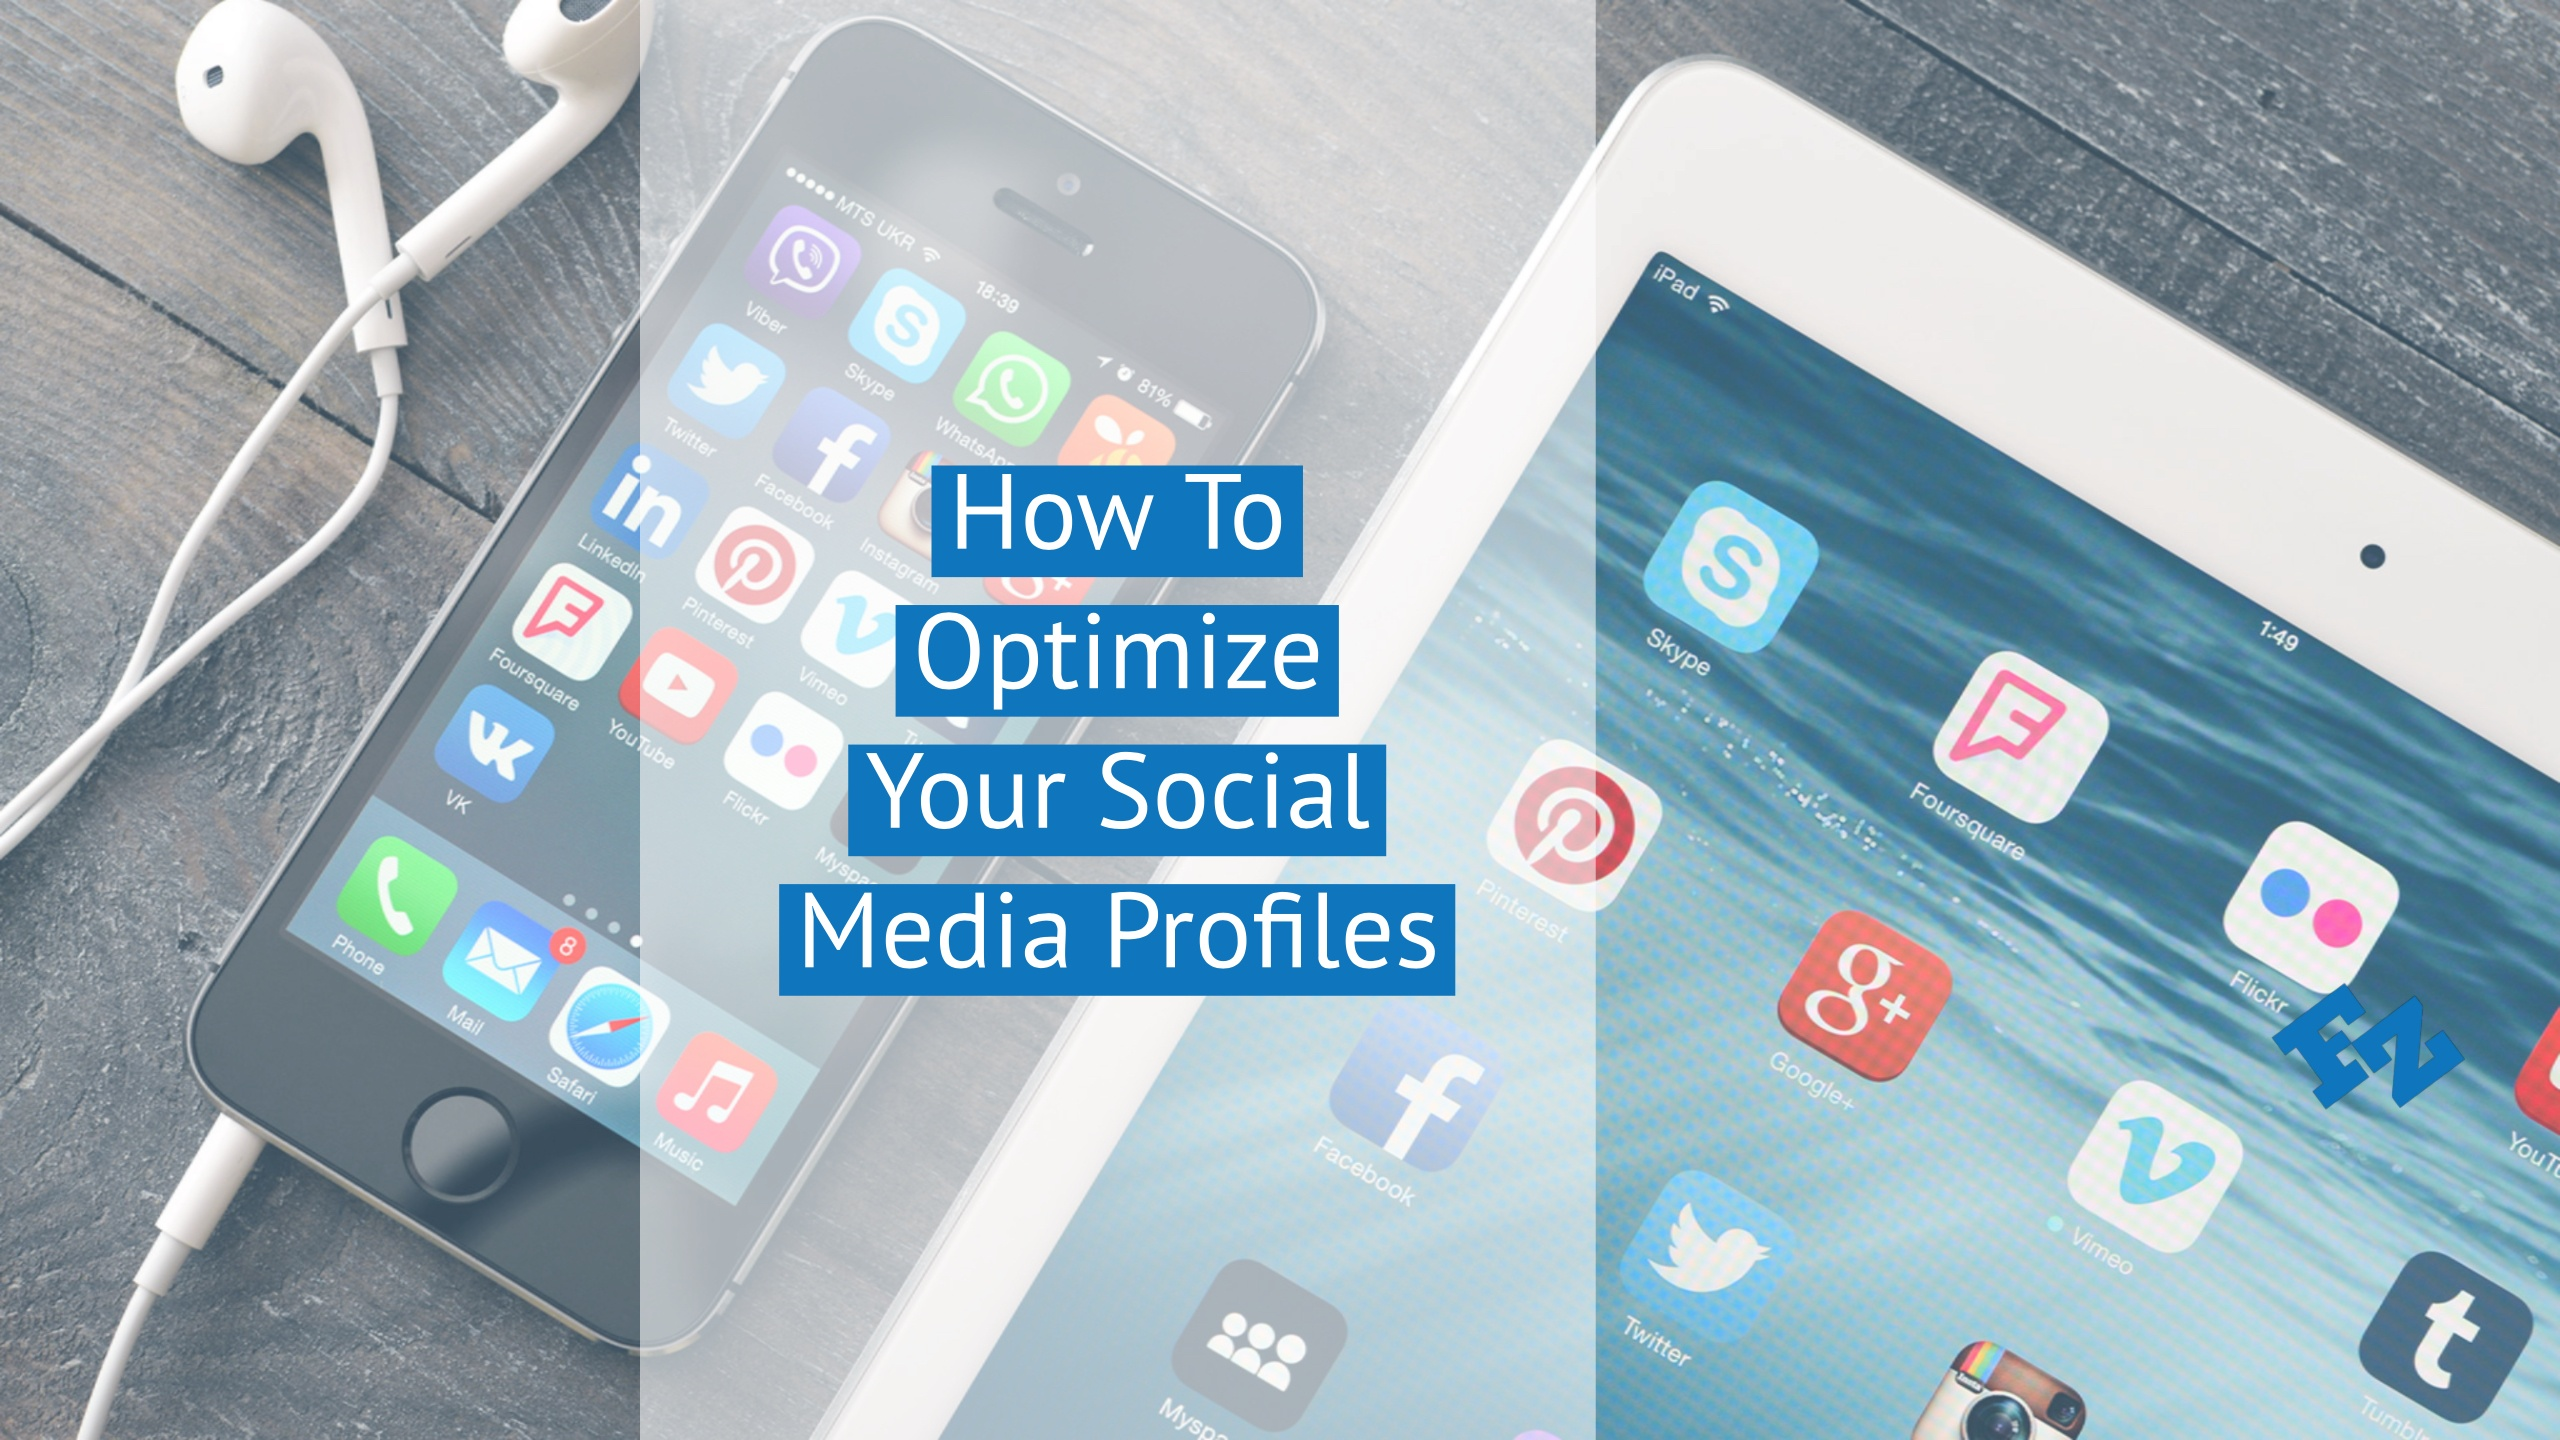 How To Optimize Your Social Media Profiles